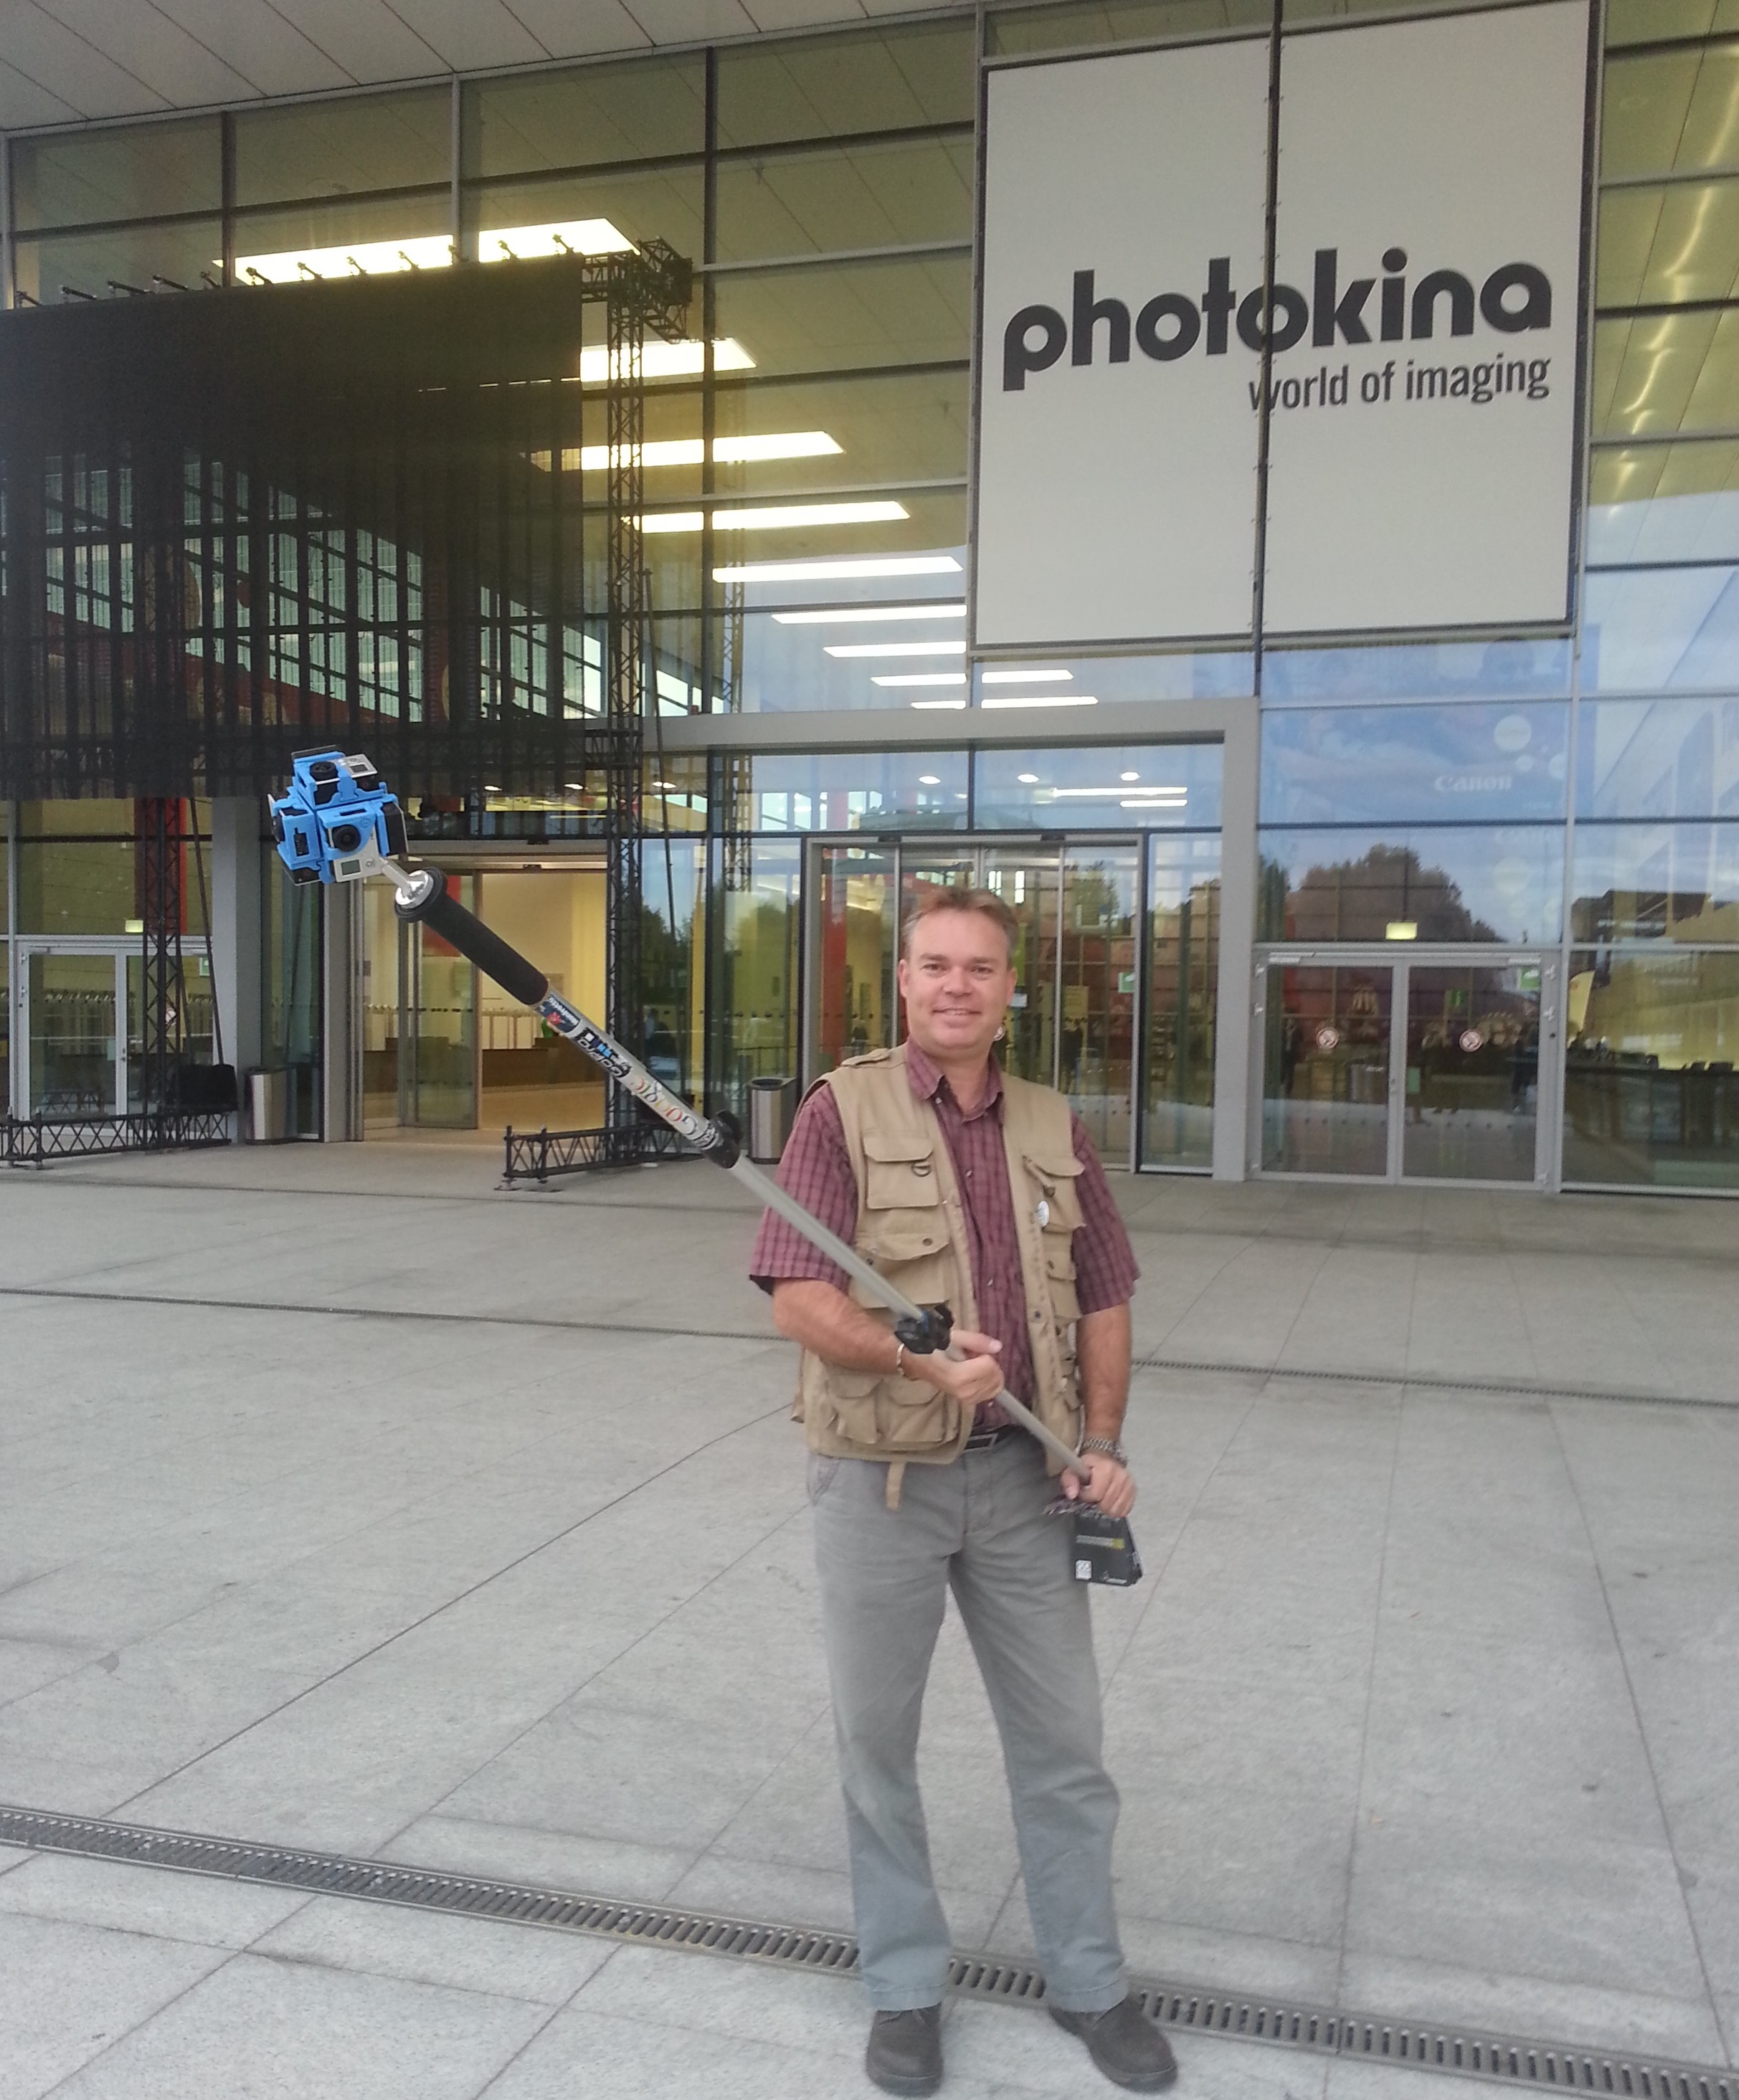 360Heros and Chris du Plessis Attend photokina!